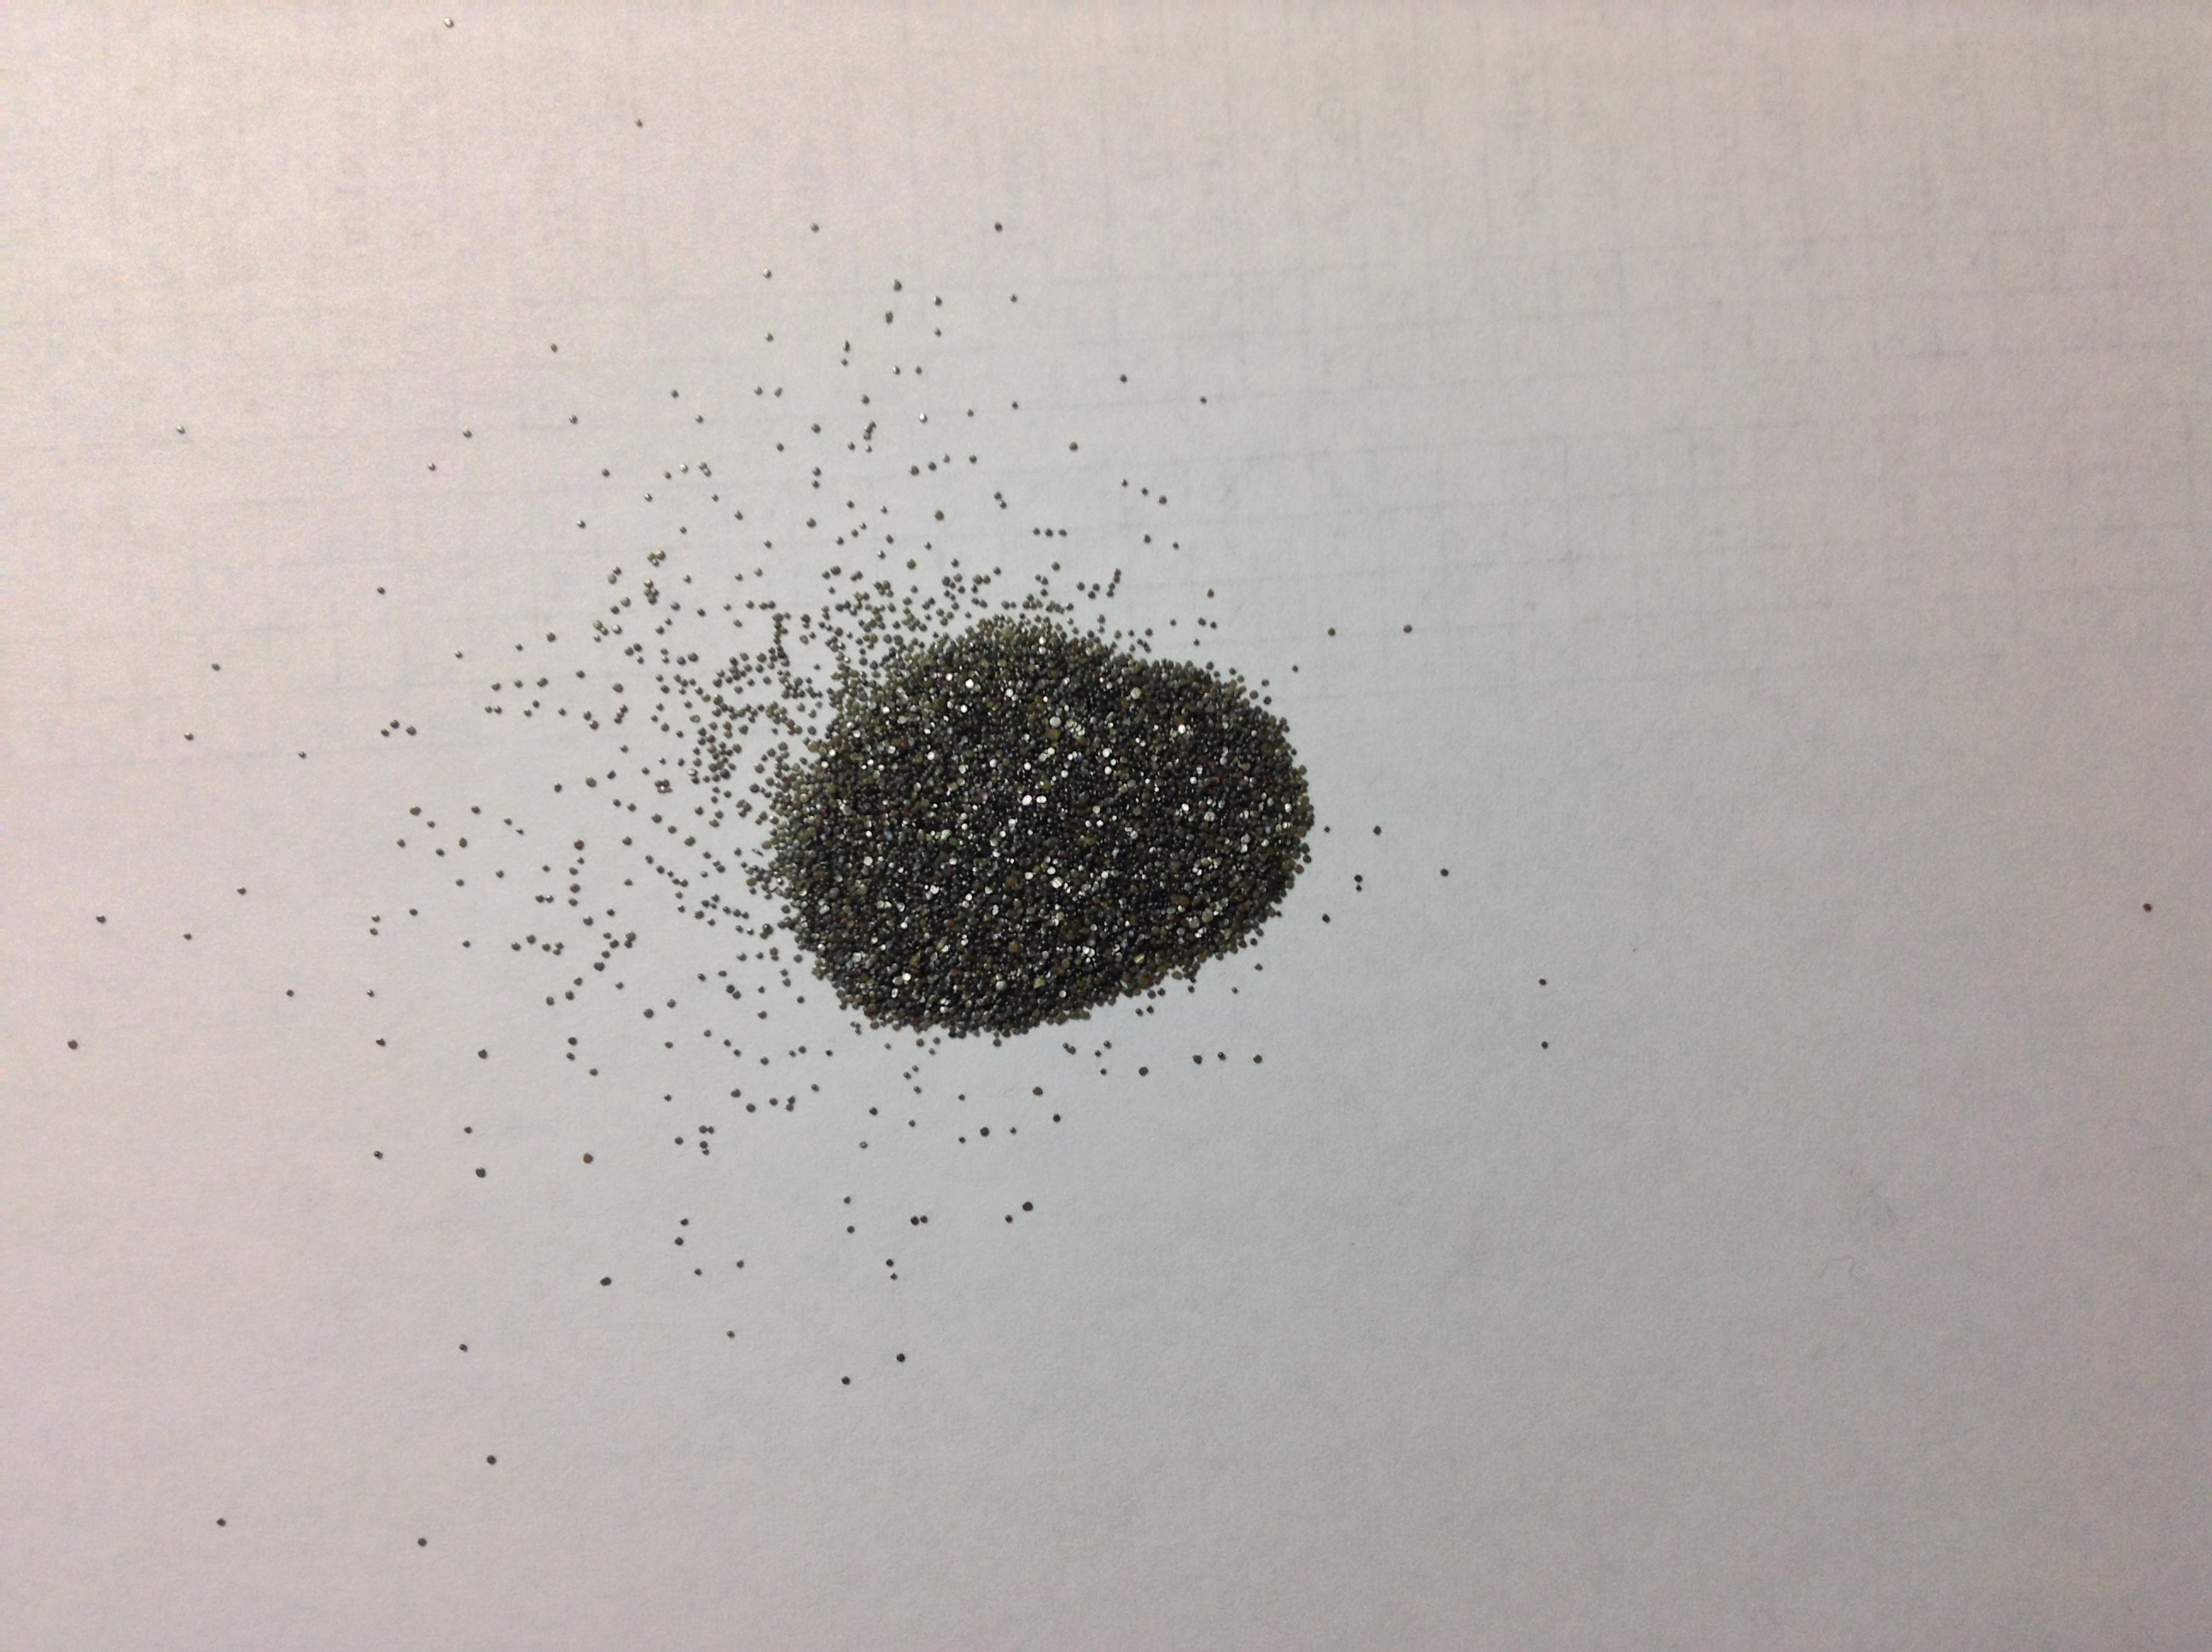 Granules Vs Powder